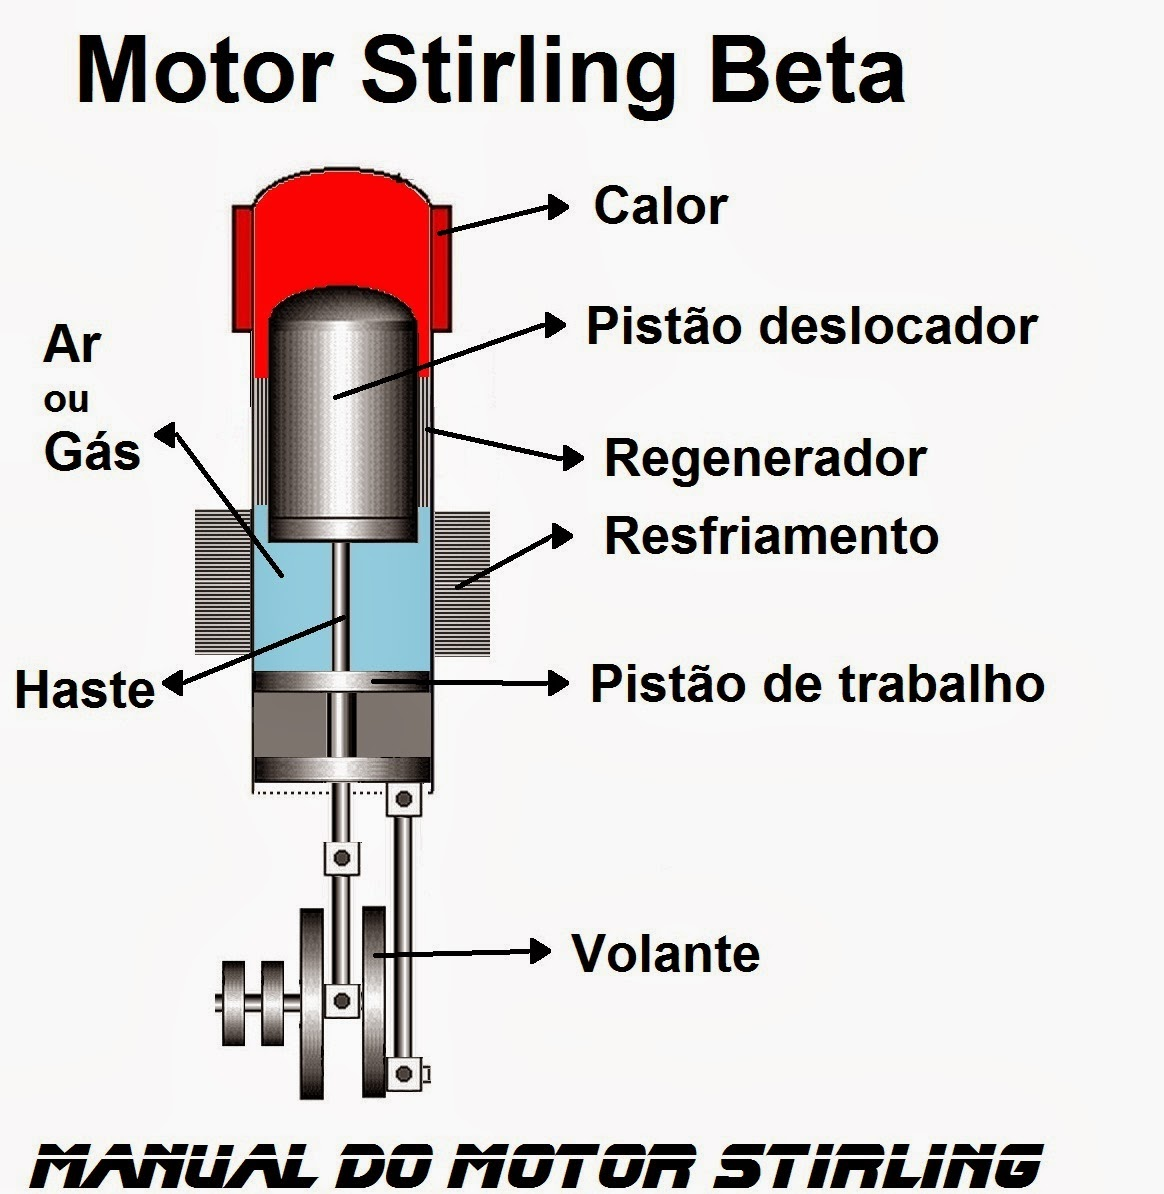 Manual do motor Stirling, Motor Stirling Beta